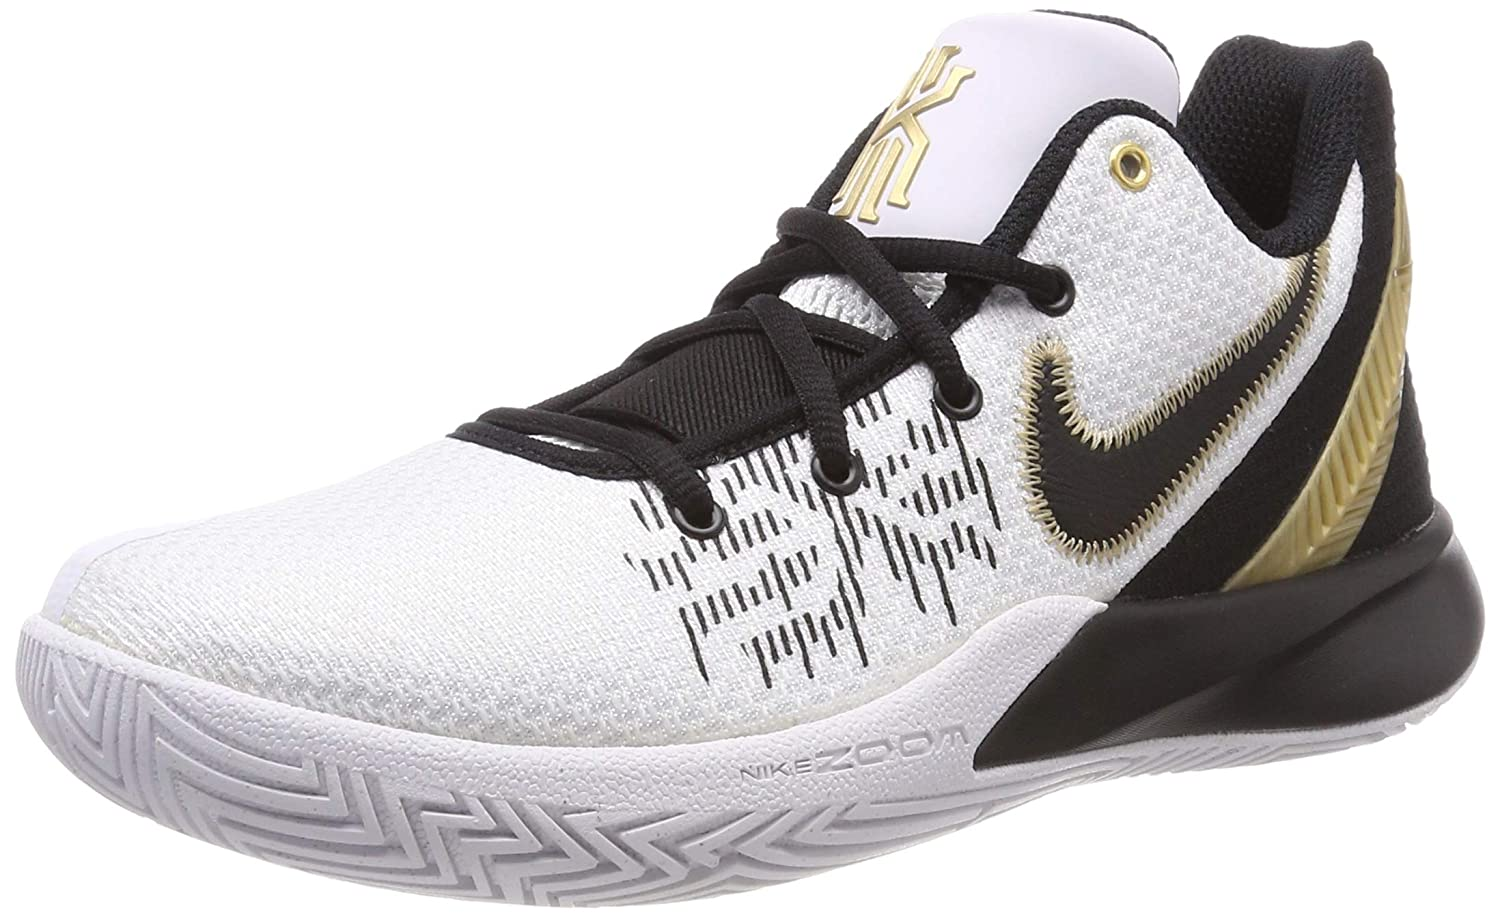 half off fde59 07e6a Nike Men's Kyrie Flytrap II Basketball Shoes, White/Metallic Gold-Black